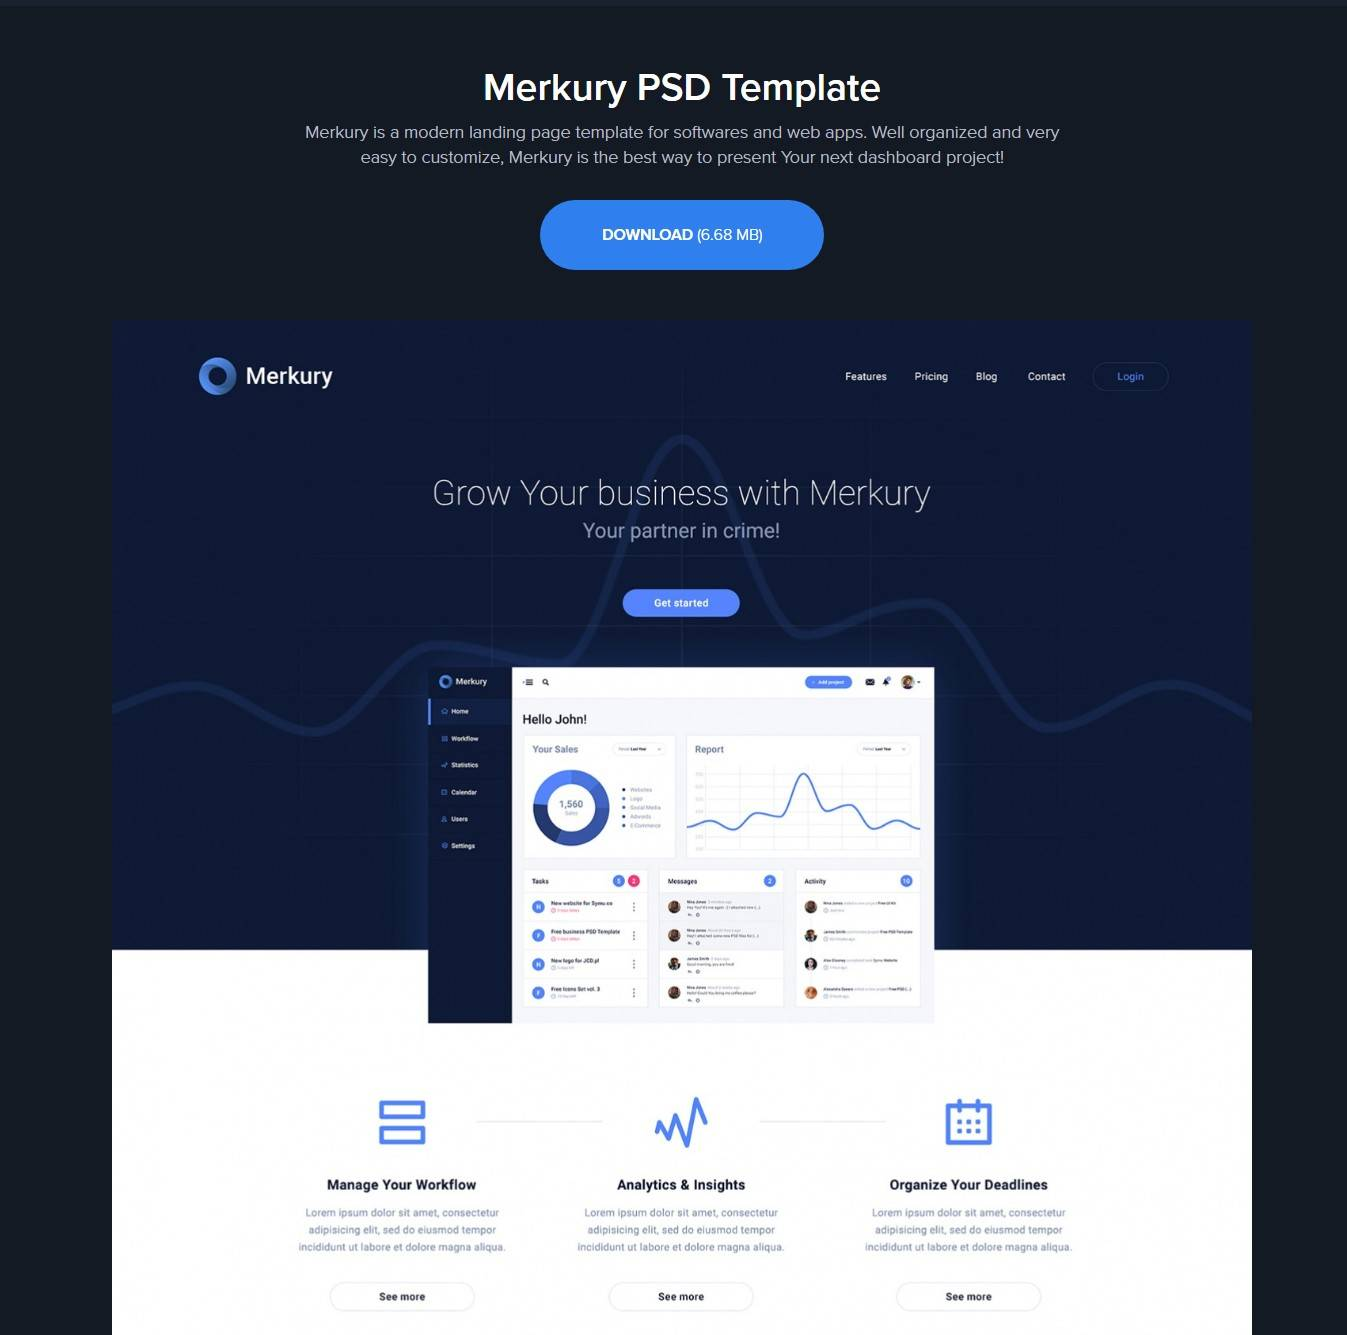 merkury-psd-template-free-templates-download-for-website